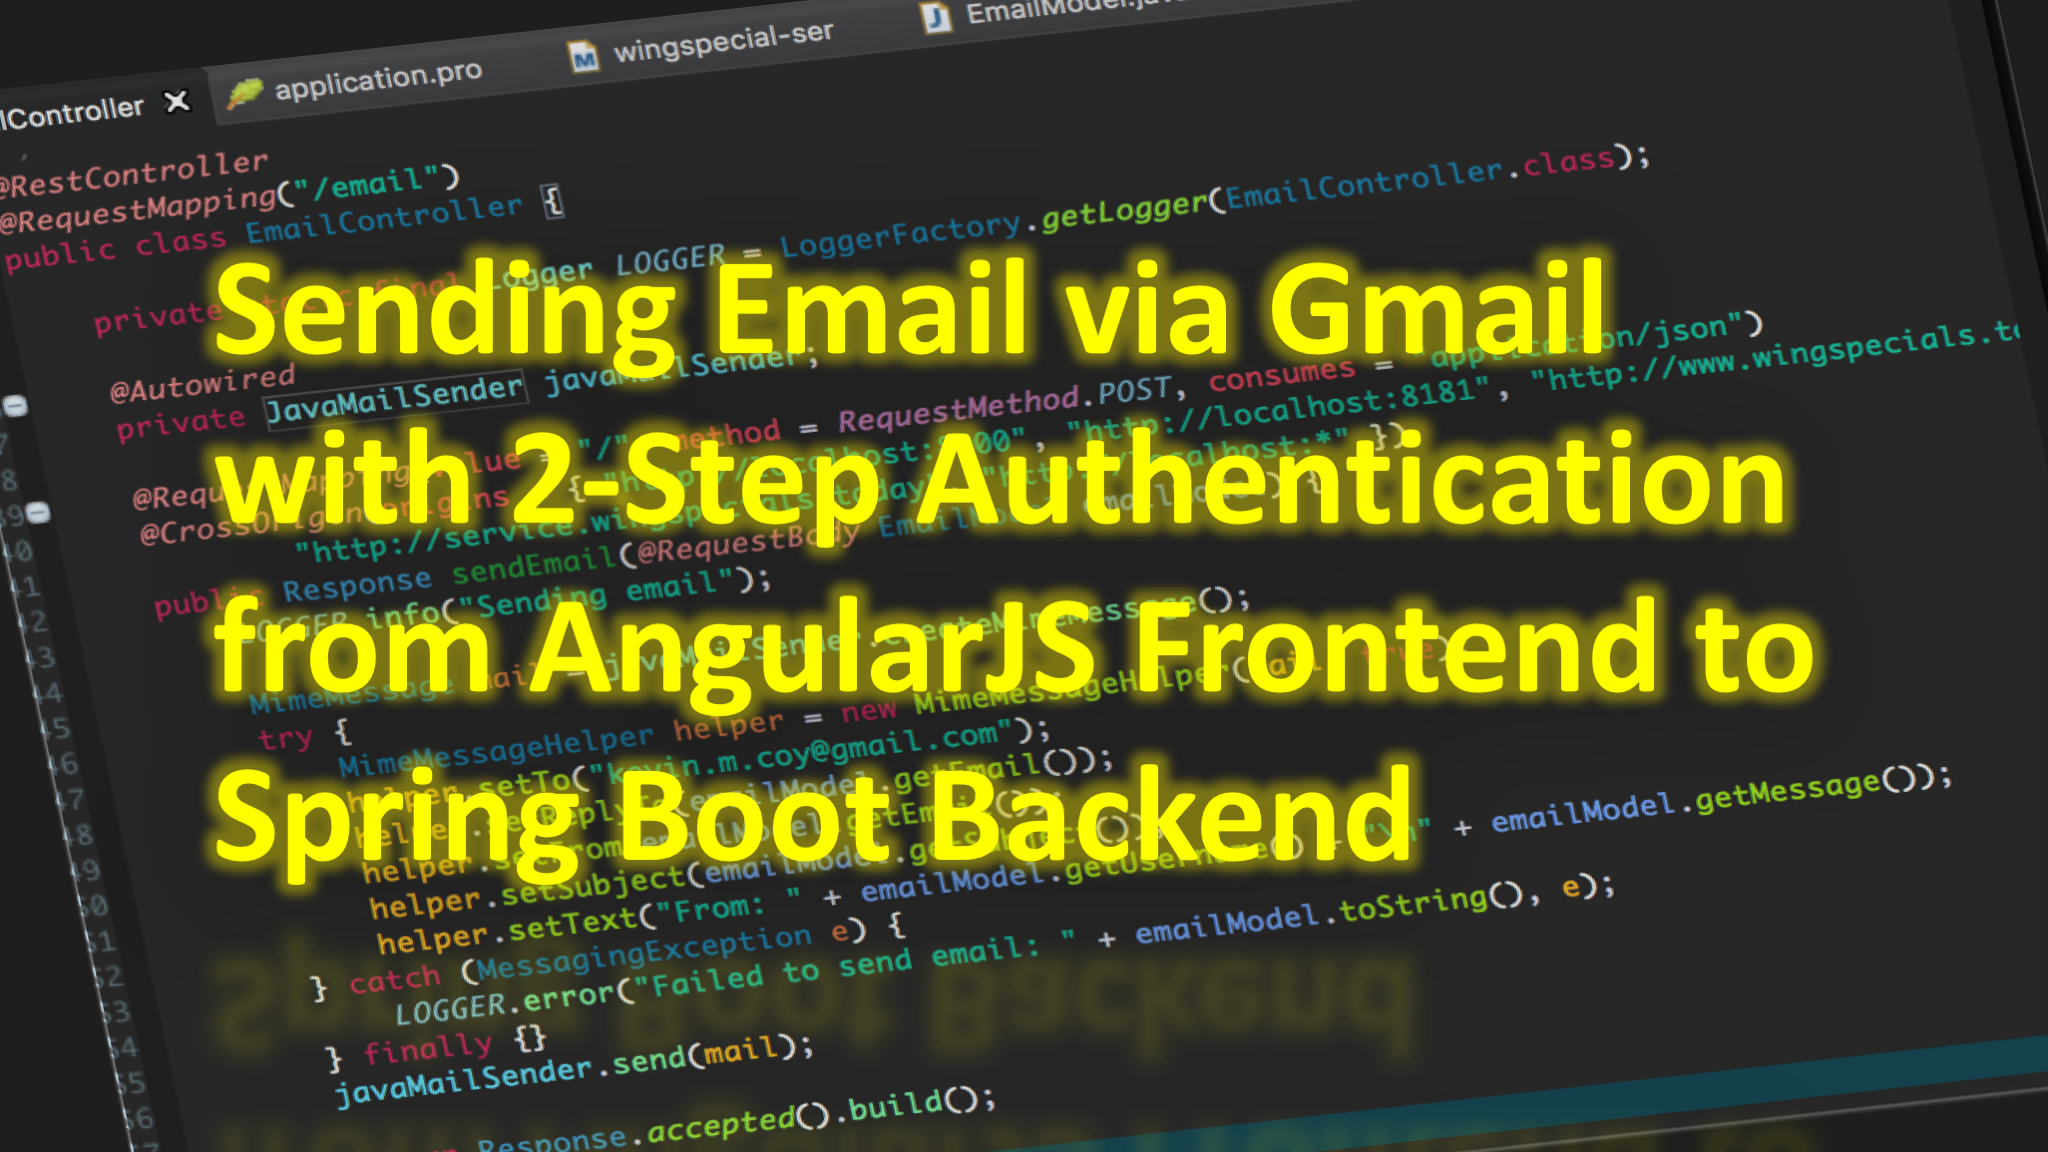 Sending Email via Gmail with 2-Step Authentication from AngularJS